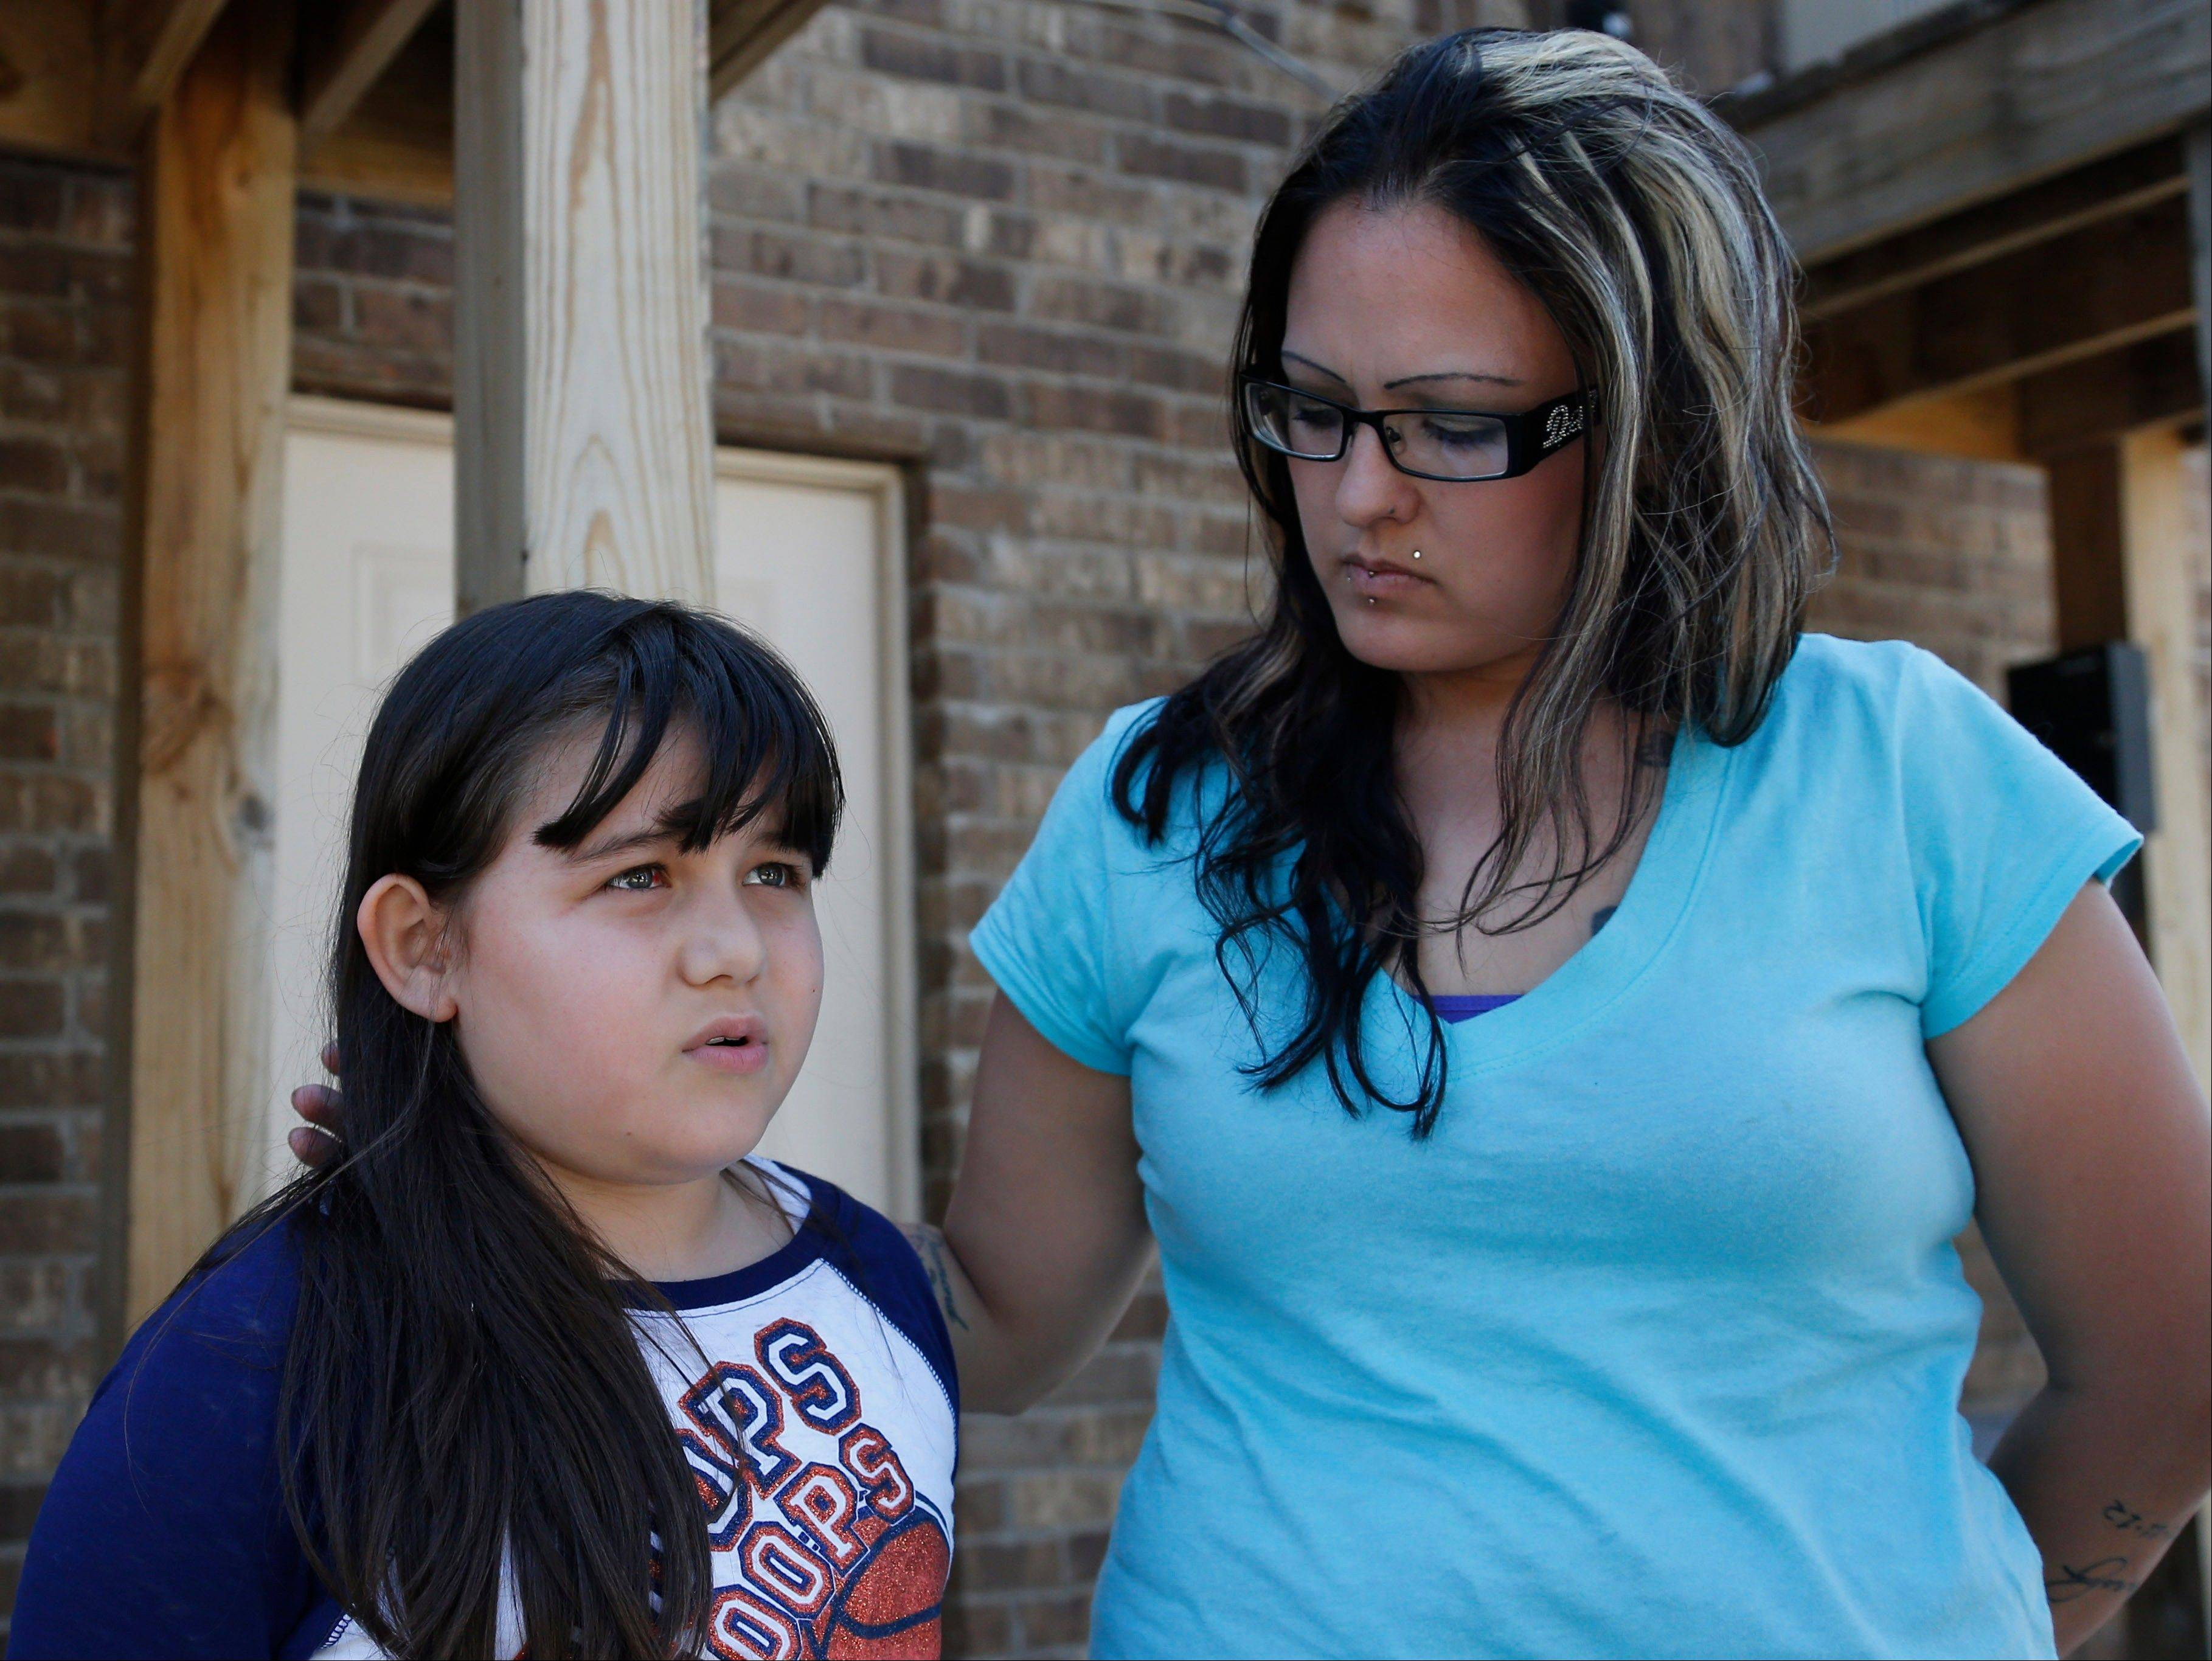 Jazmin Rodriguez, left, and her mother, LaTisha Garcia, right, looks on, in Moore, Okla., Thursday, May 23, 2013. Garcia carried her injured daughter away from a school that was hit by a tornado on Monday. The image of the moment has become one of the enduring images from the storm.